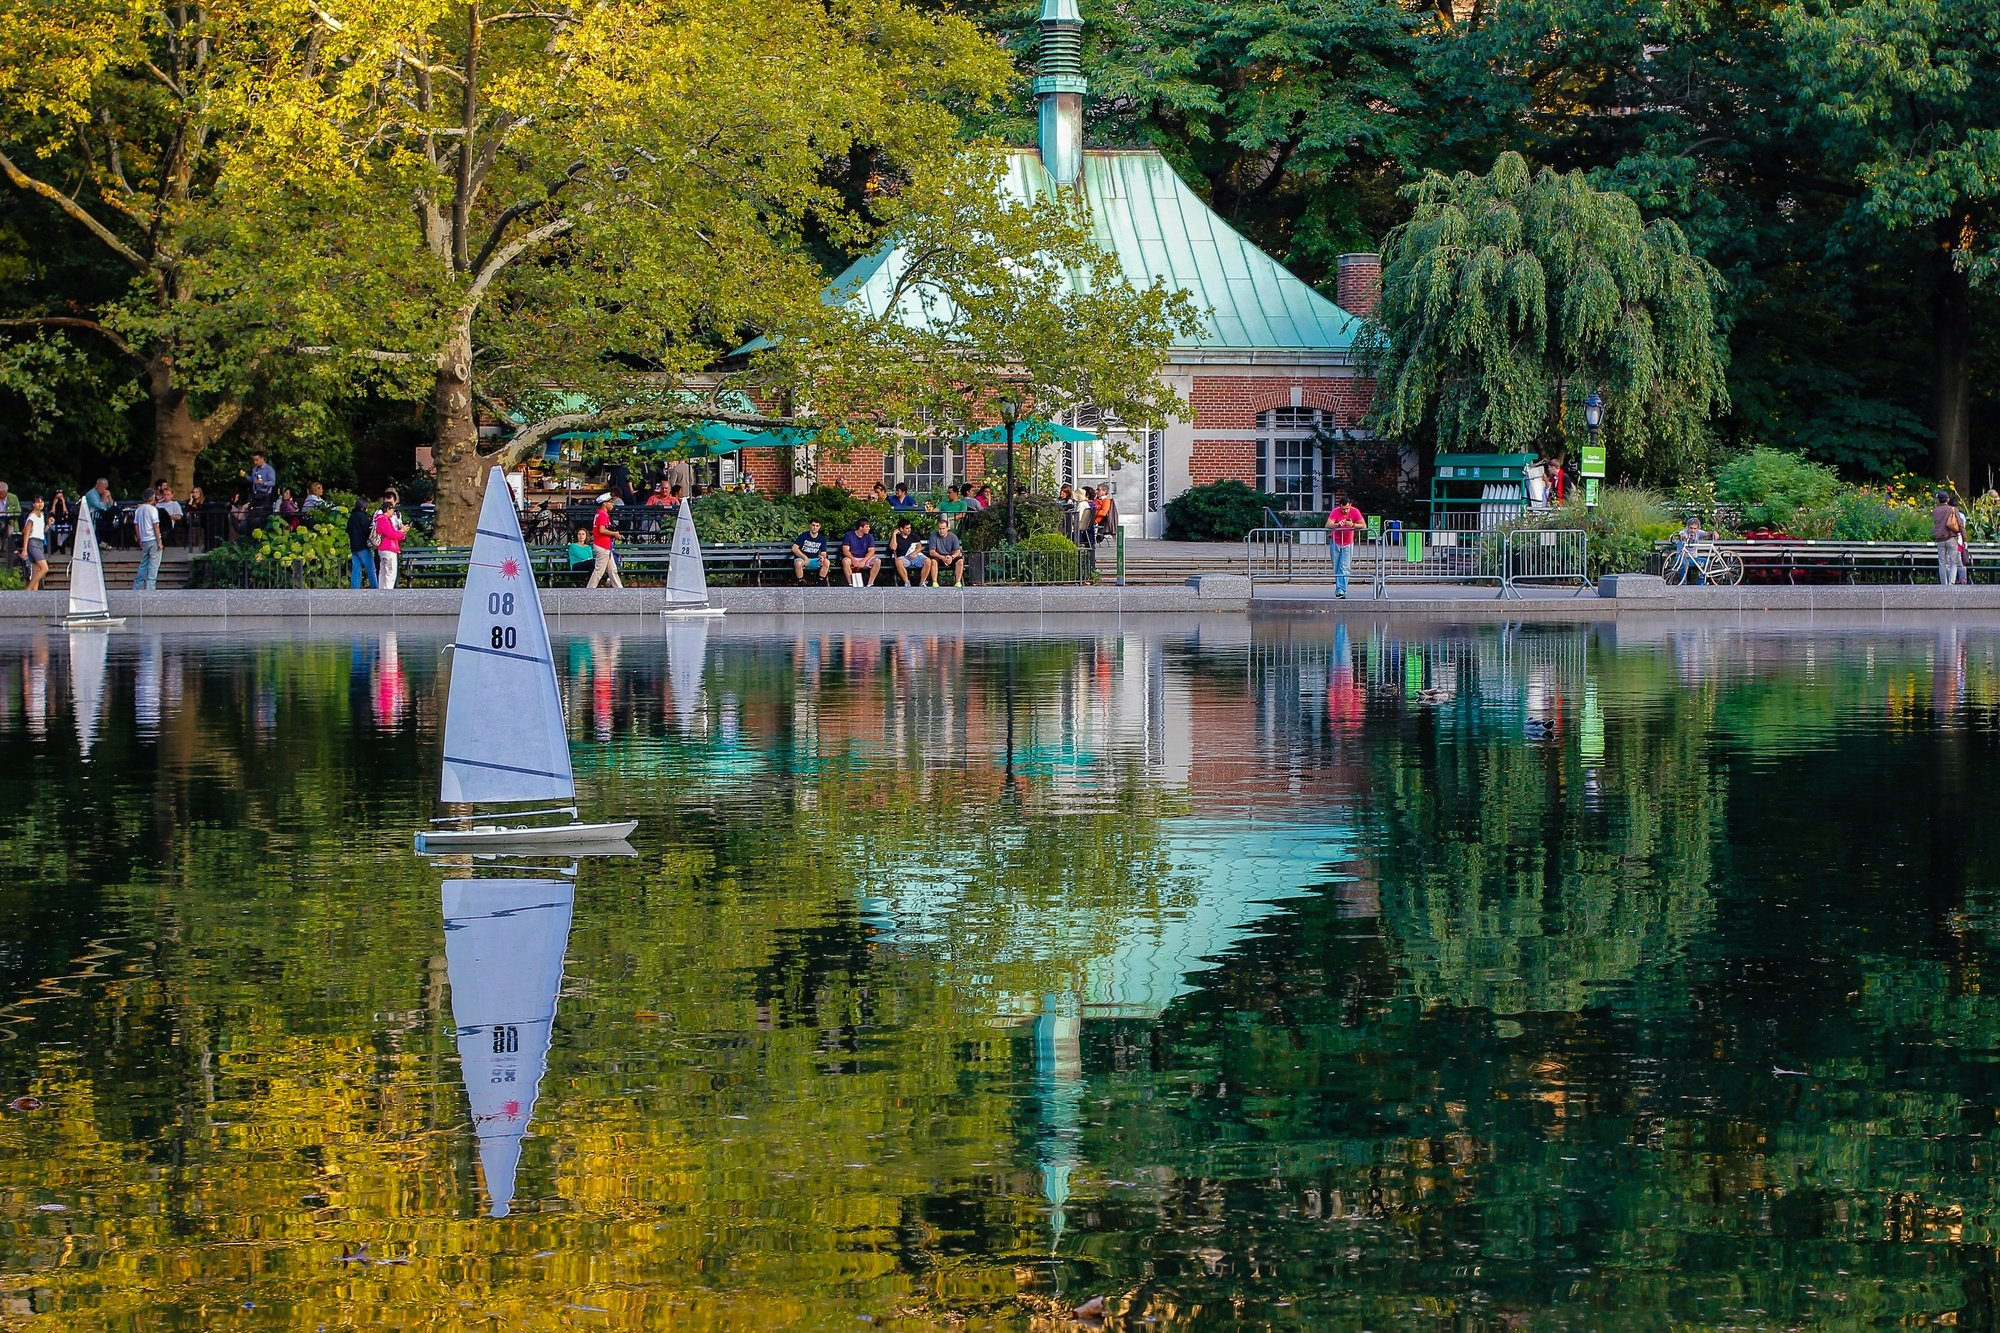 Miniature boats on Conservatory Water in Central Park